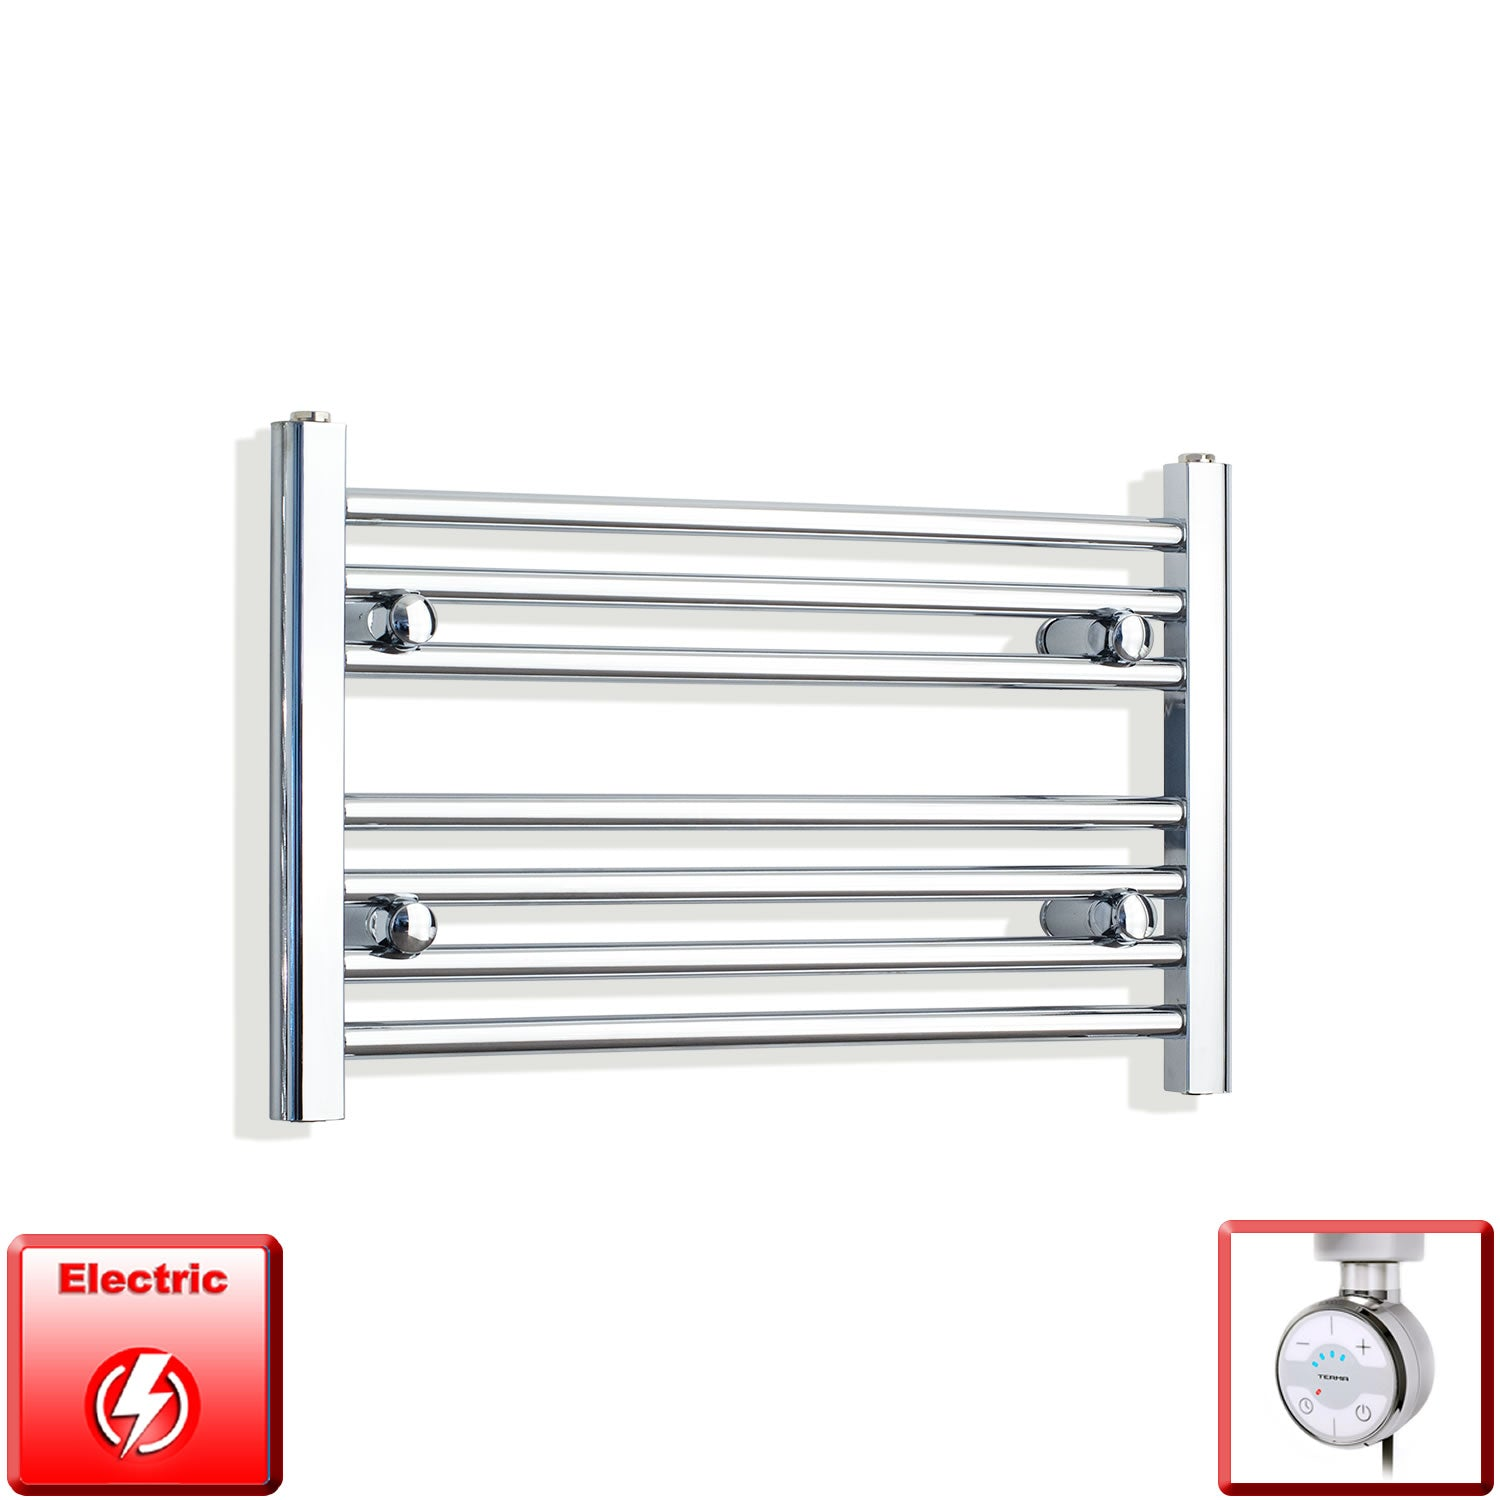 650mm Wide 400mm High Pre-Filled Chrome Electric Towel Rail Radiator With Thermostatic MOA Element